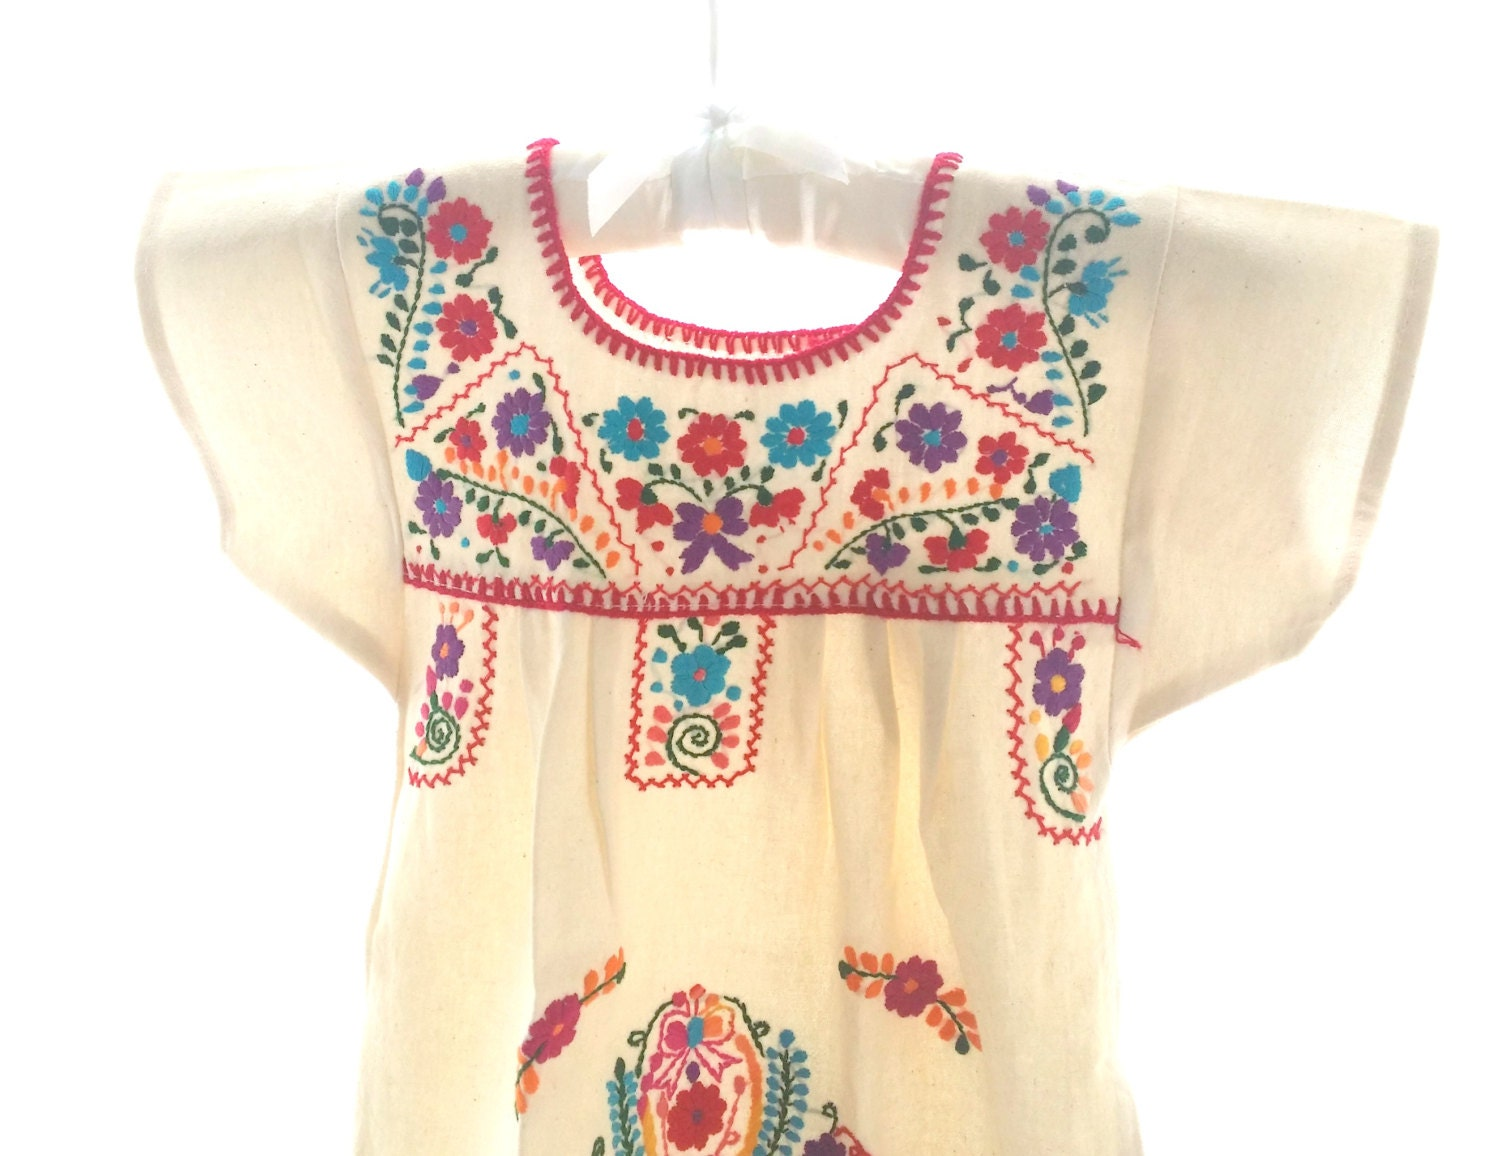 Handmade mexican embroidered baby dress by pathy on etsy